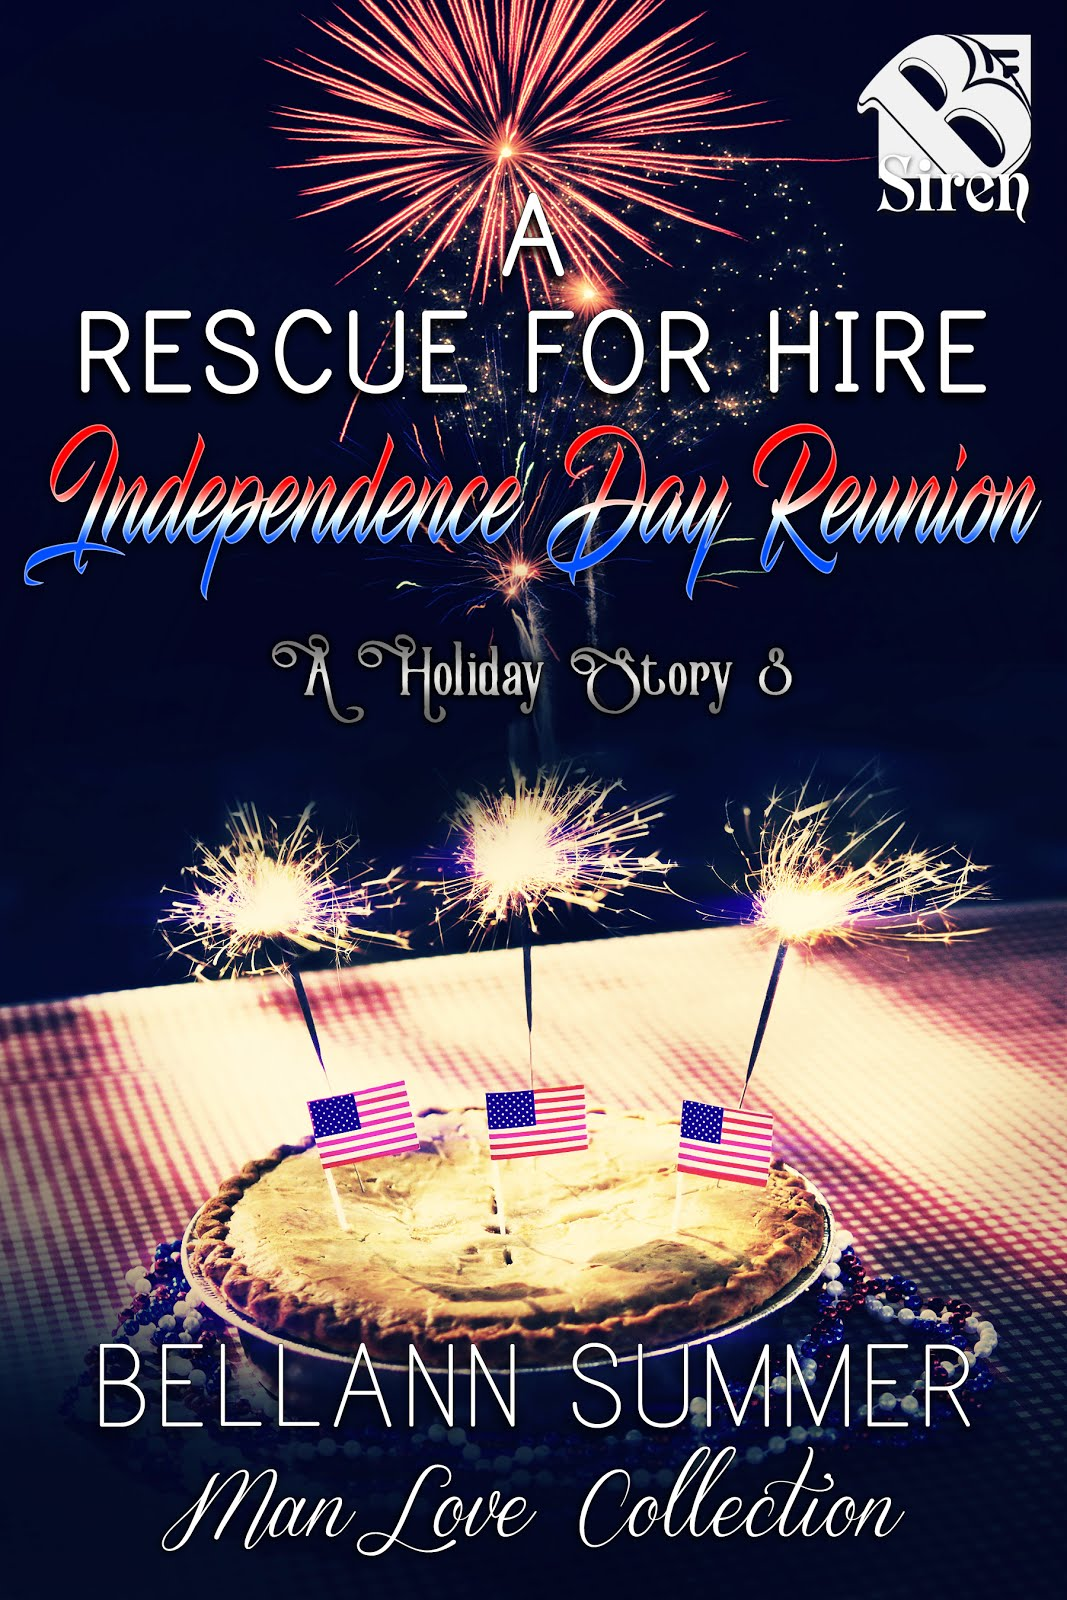 A Rescue for Hire Independence Day Reunion